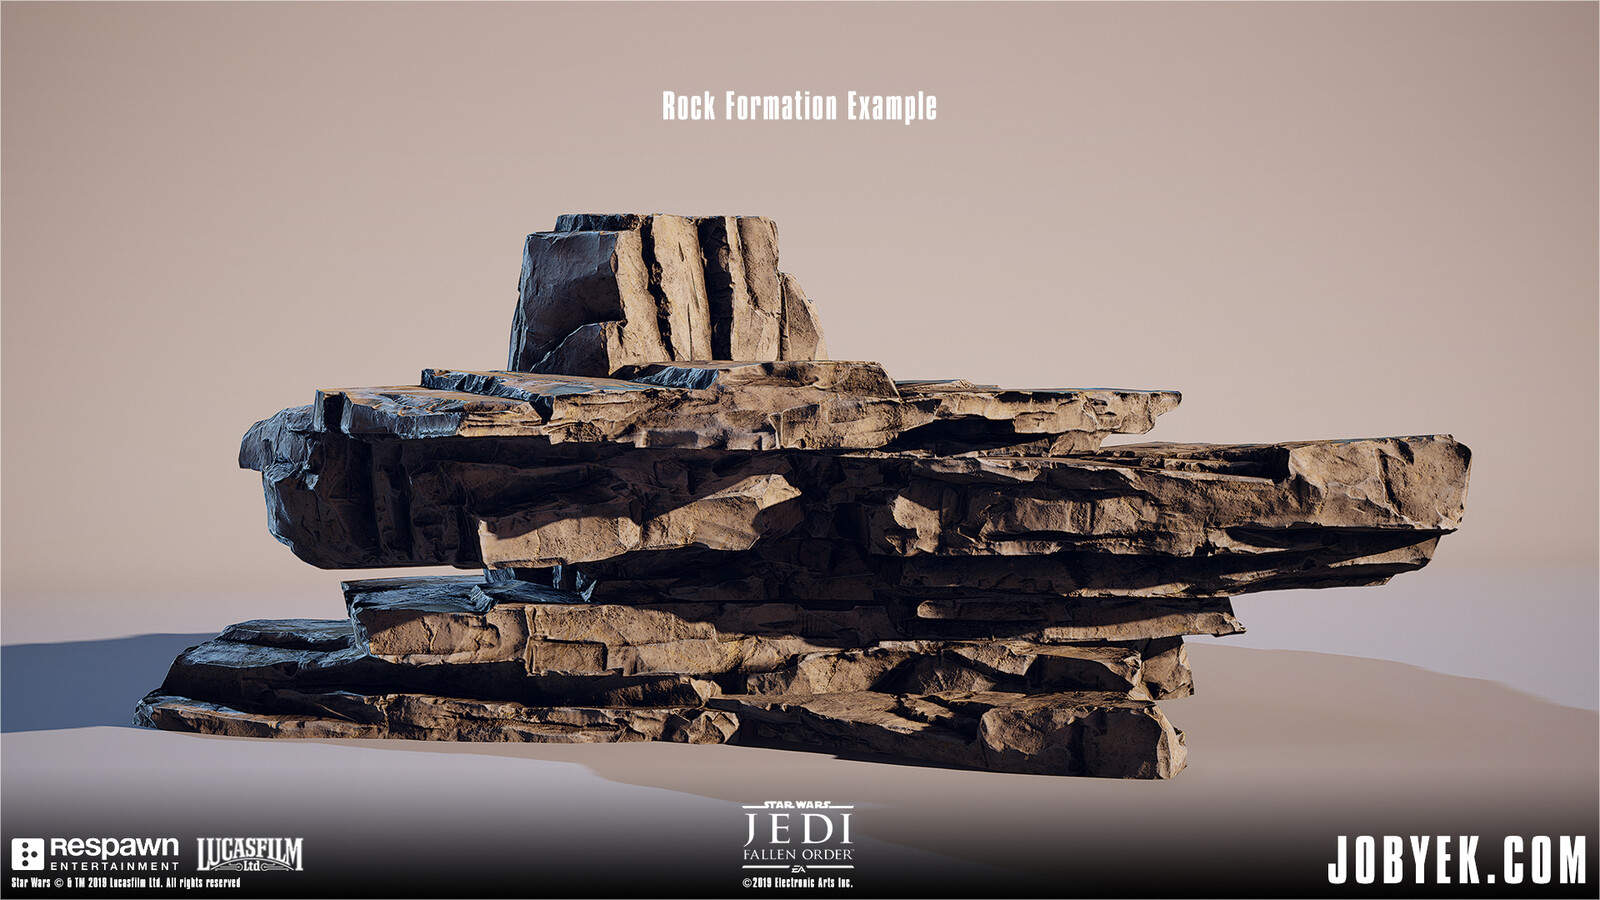 Rock Formation example with the rock assets above